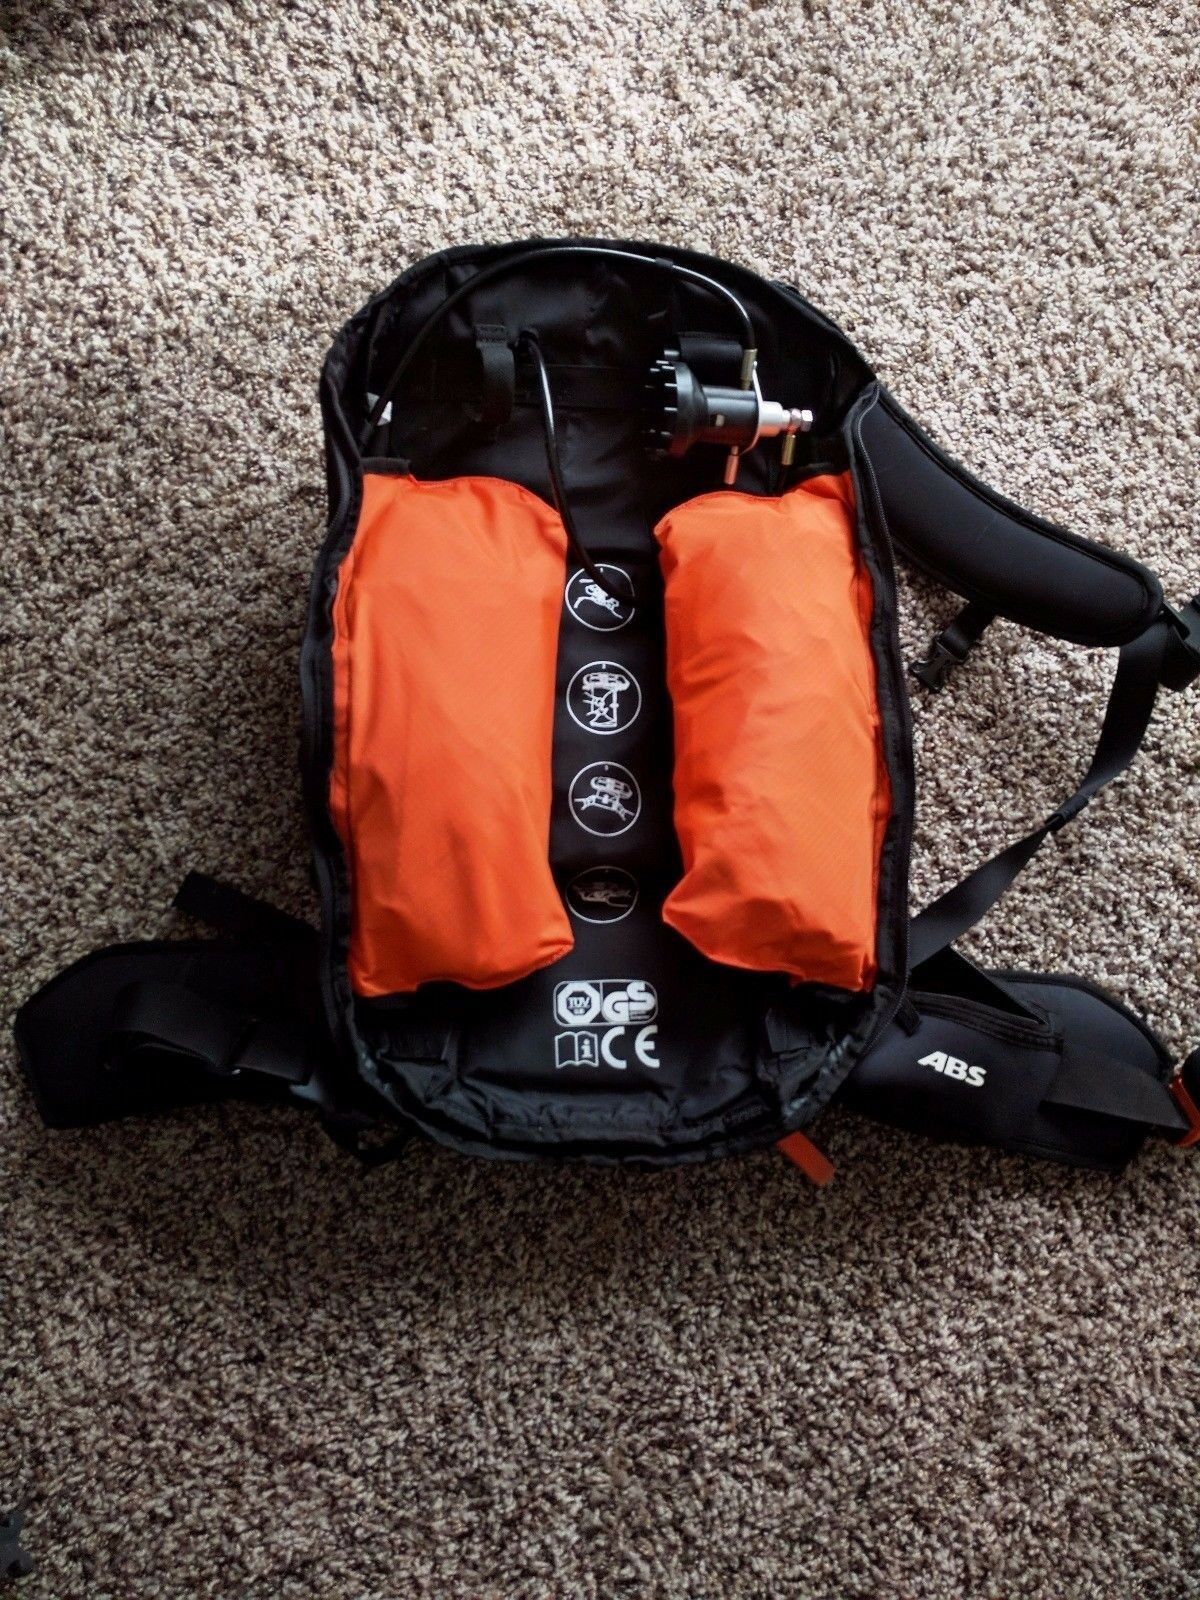 8L ABS Vario Airbag with Dakine Pack 40L